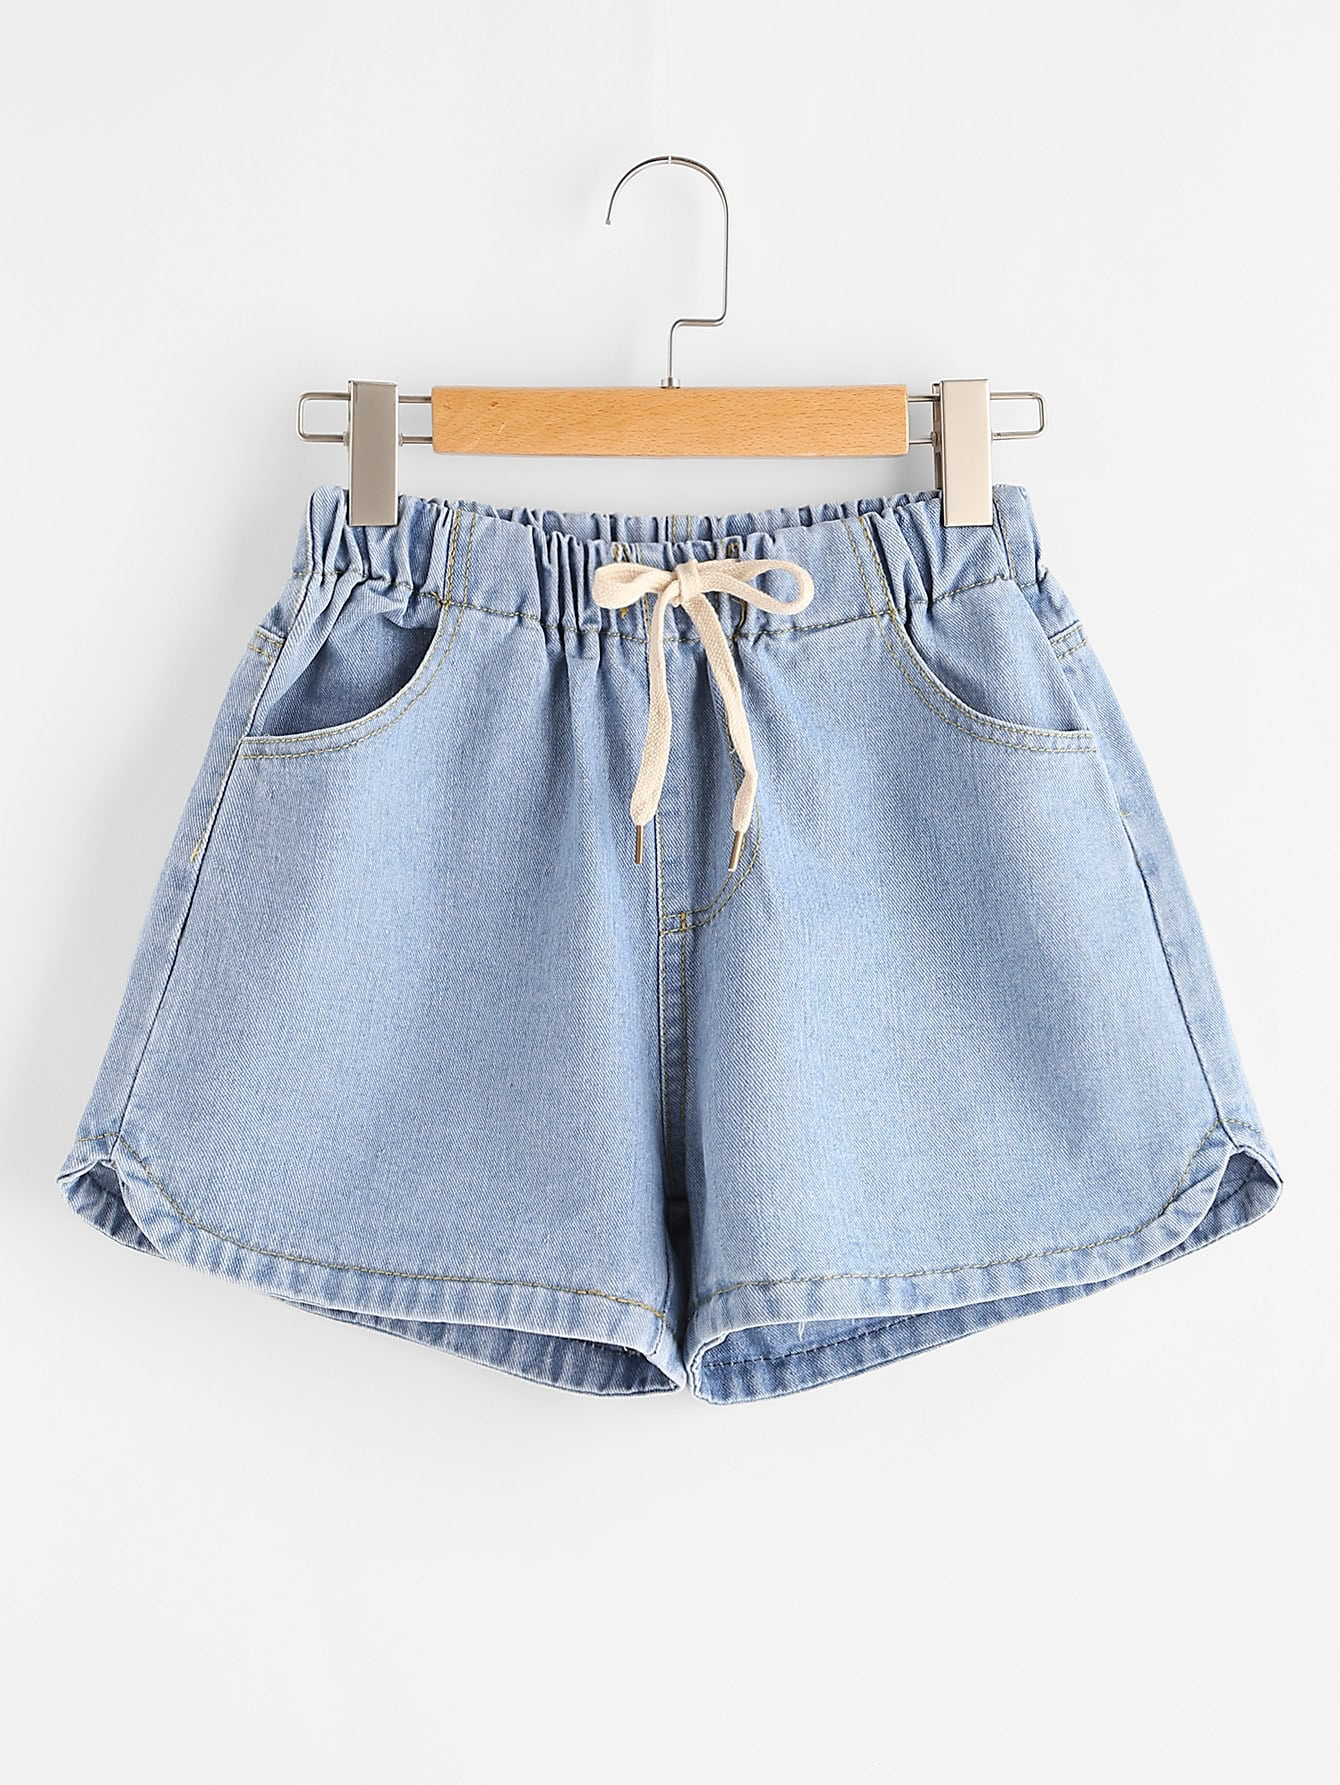 Shop for Single-breasted Stretch of Elastic Thin Denim Shorts Candy Color Hot Pants in WHITE M online at $ and discover other cheap Jeans at sashimicraft.ga Cheapest and Latest women & men fashion site including categories such as dresses, shoes, .